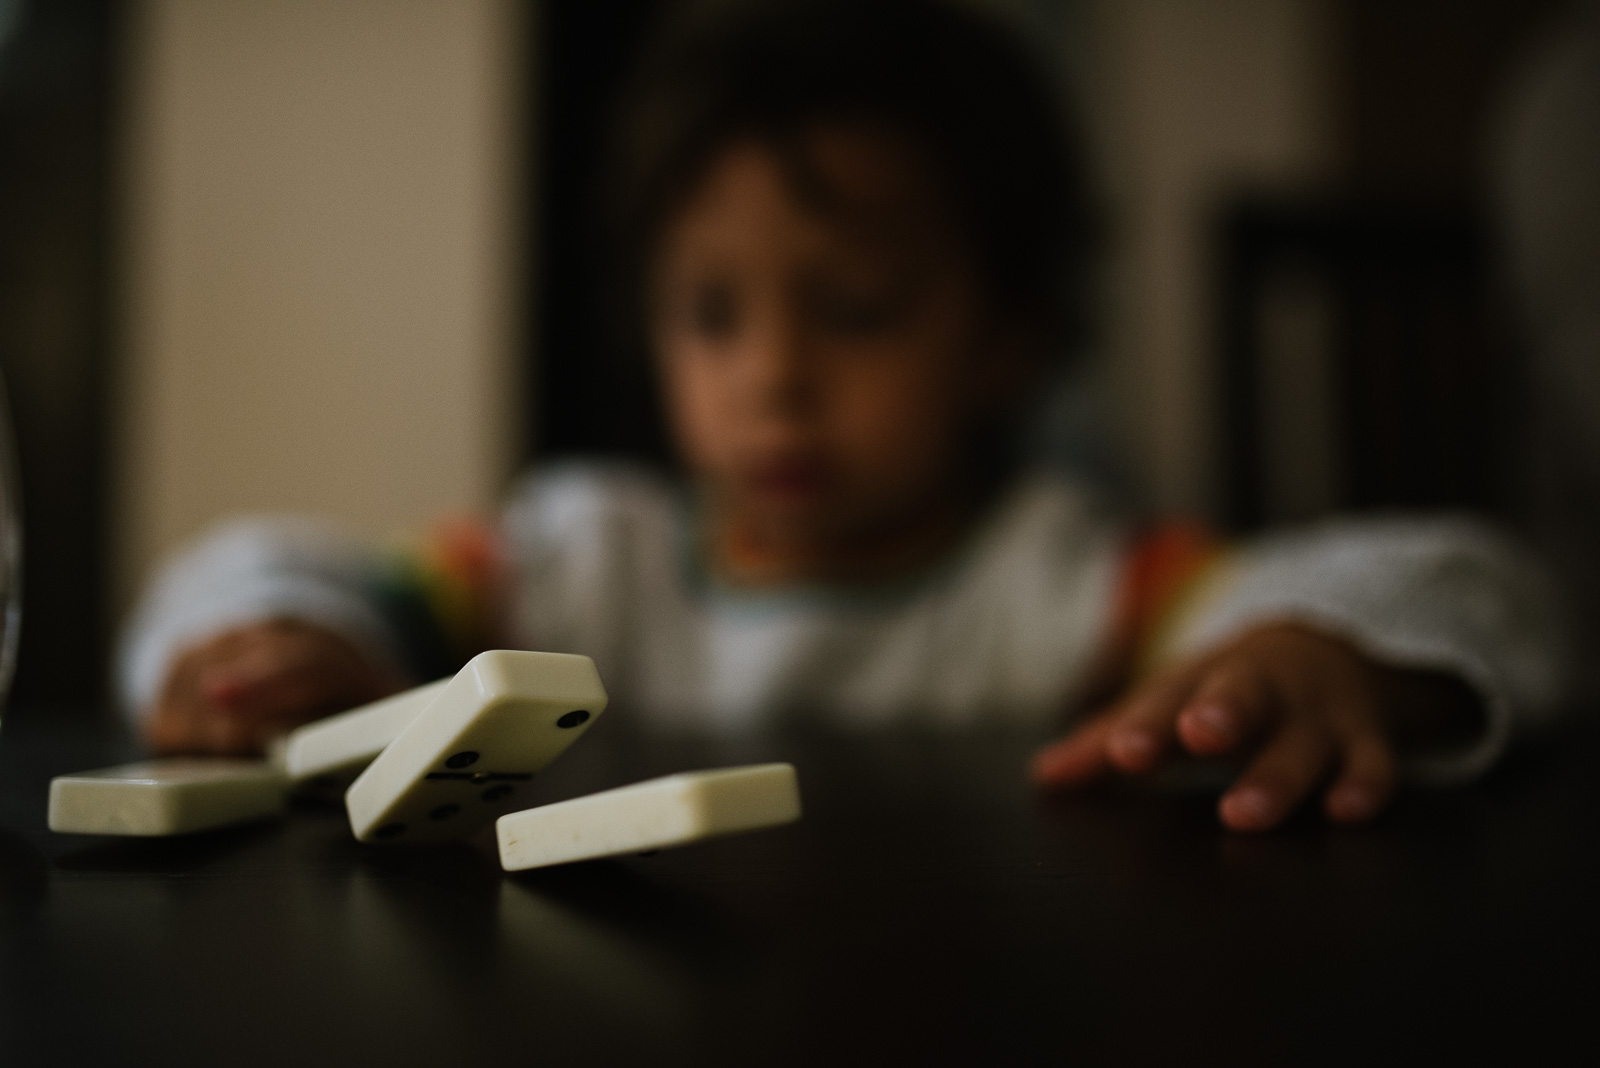 Freezing motion in photography, dominoes fall as a child plays